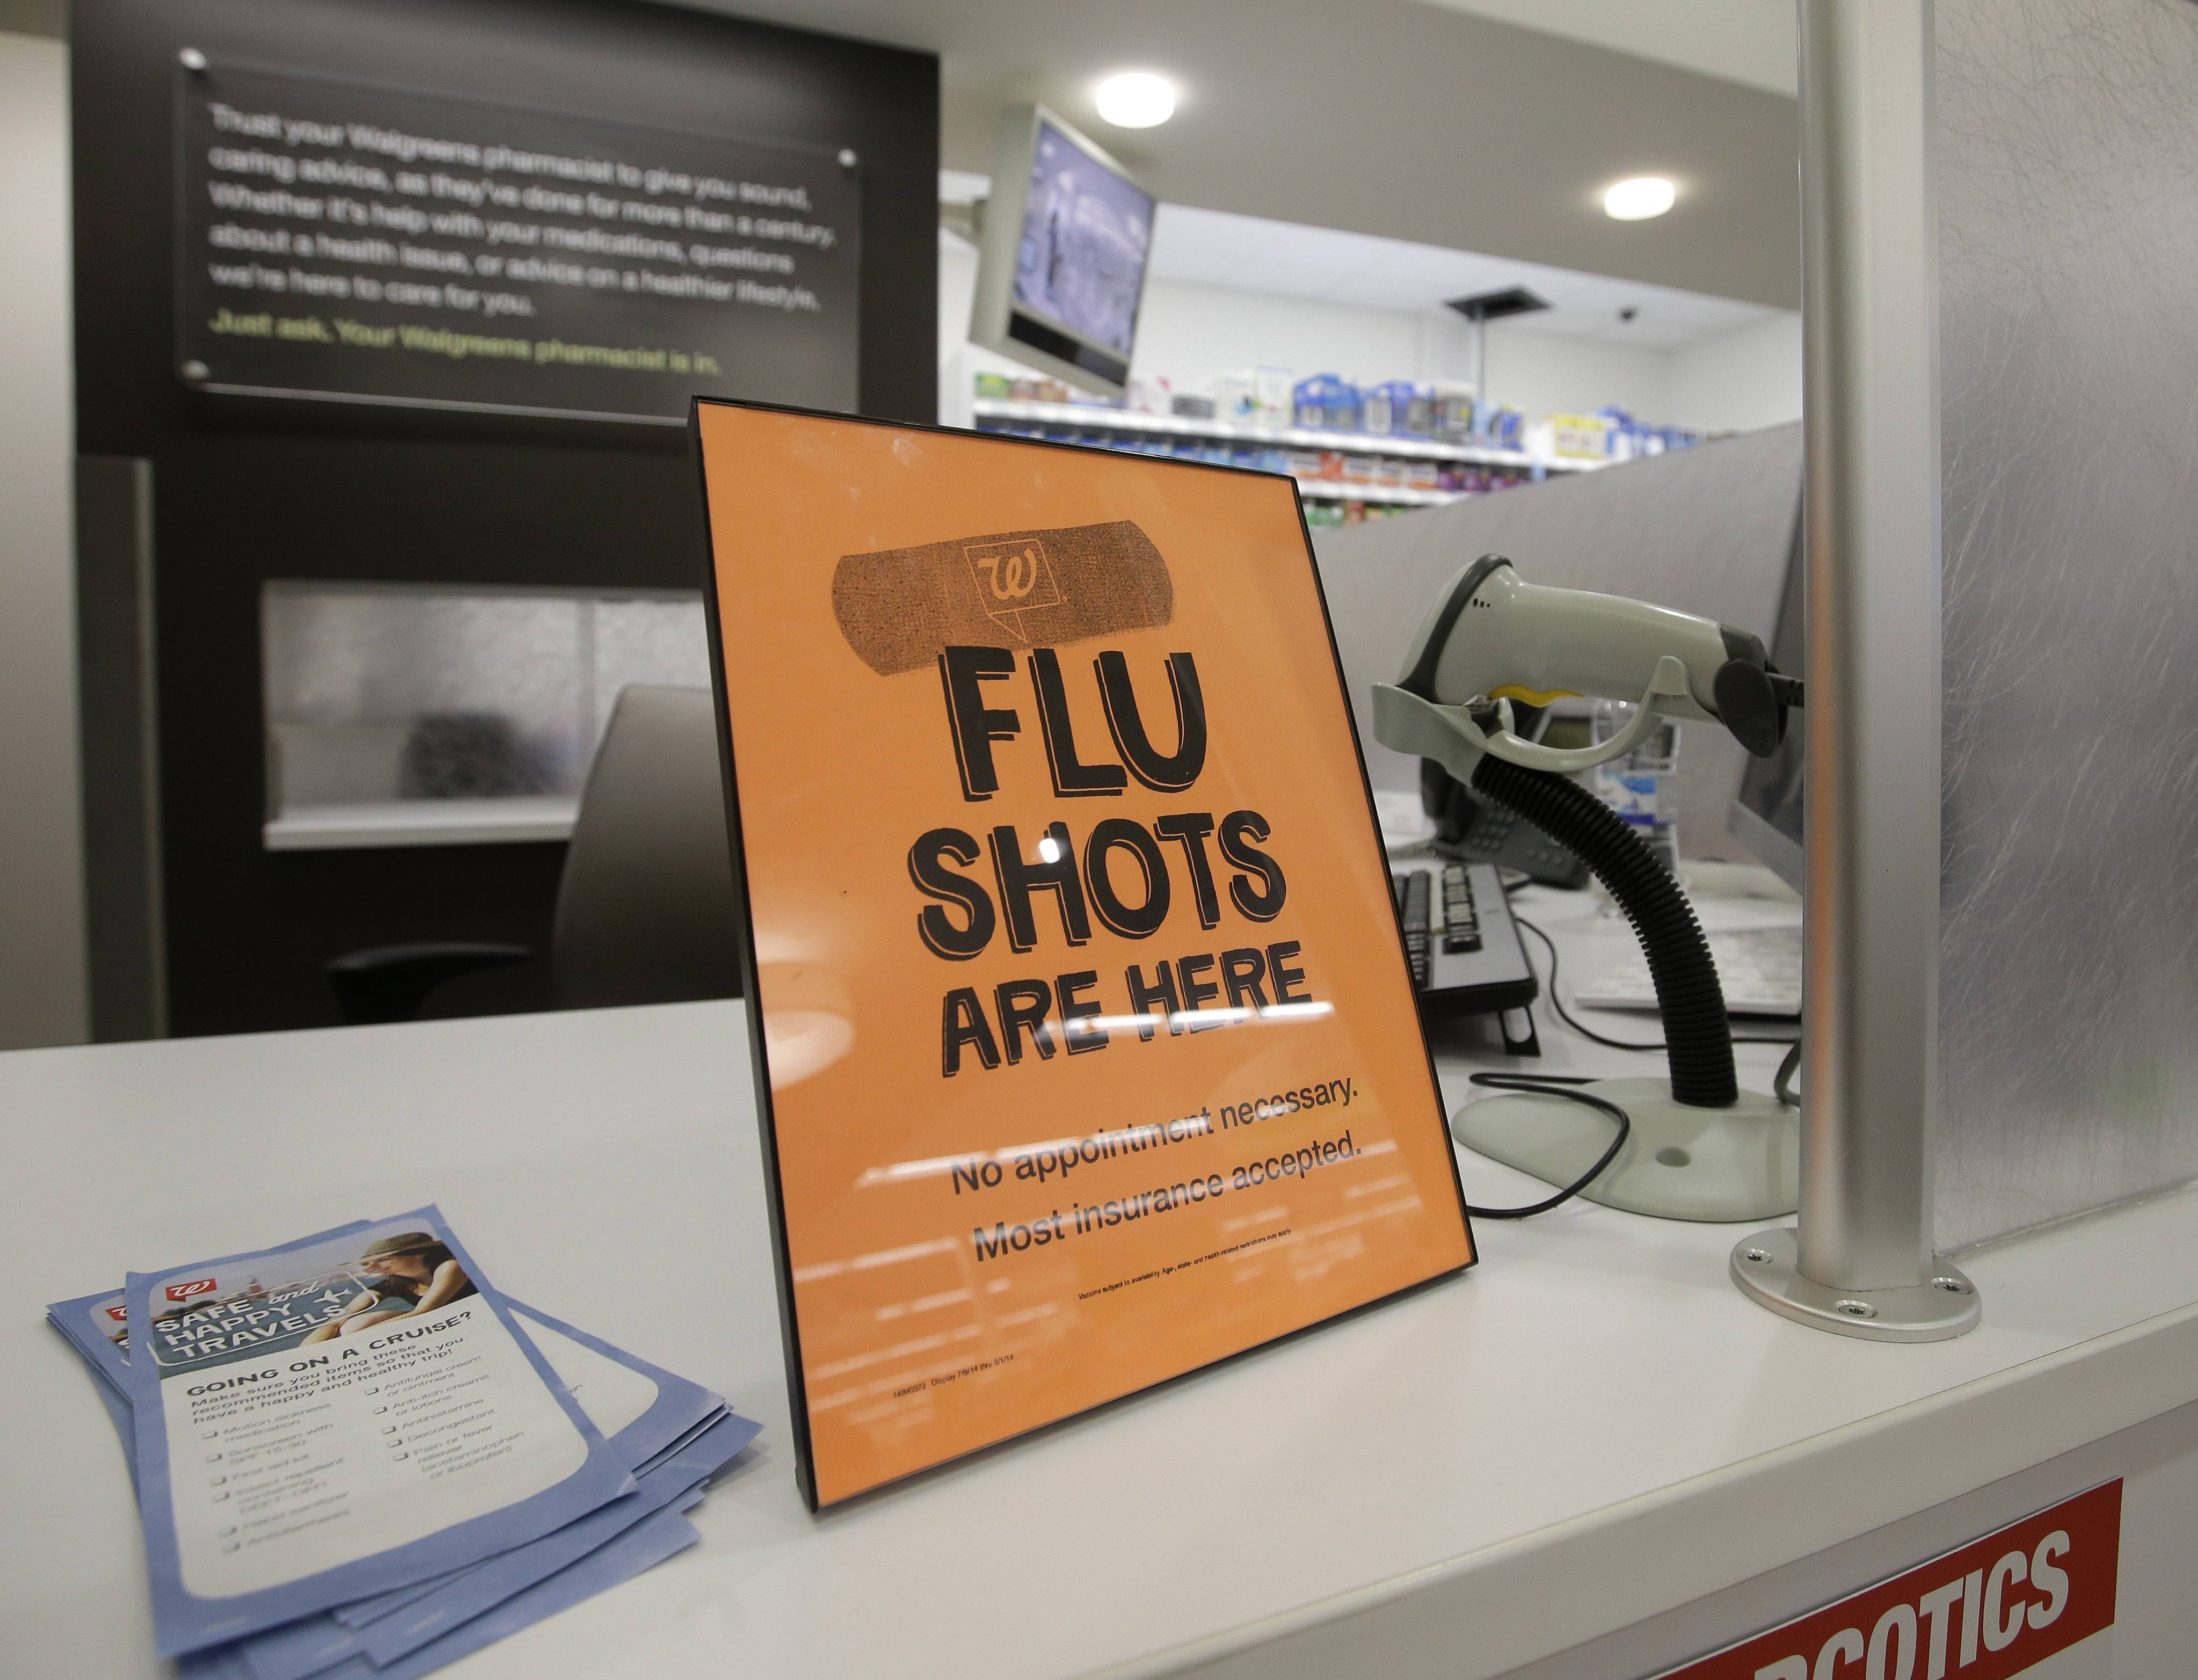 A sign telling customers that they can get a flu shot in a Walgreen store is seen Tuesday in Indianapolis. The nation's biggest drugstores and retailers are grabbing larger chunks of the immunization market, giving customers more convenient options to protect themselves against the flu, pneumonia and more than a dozen other illnesses.